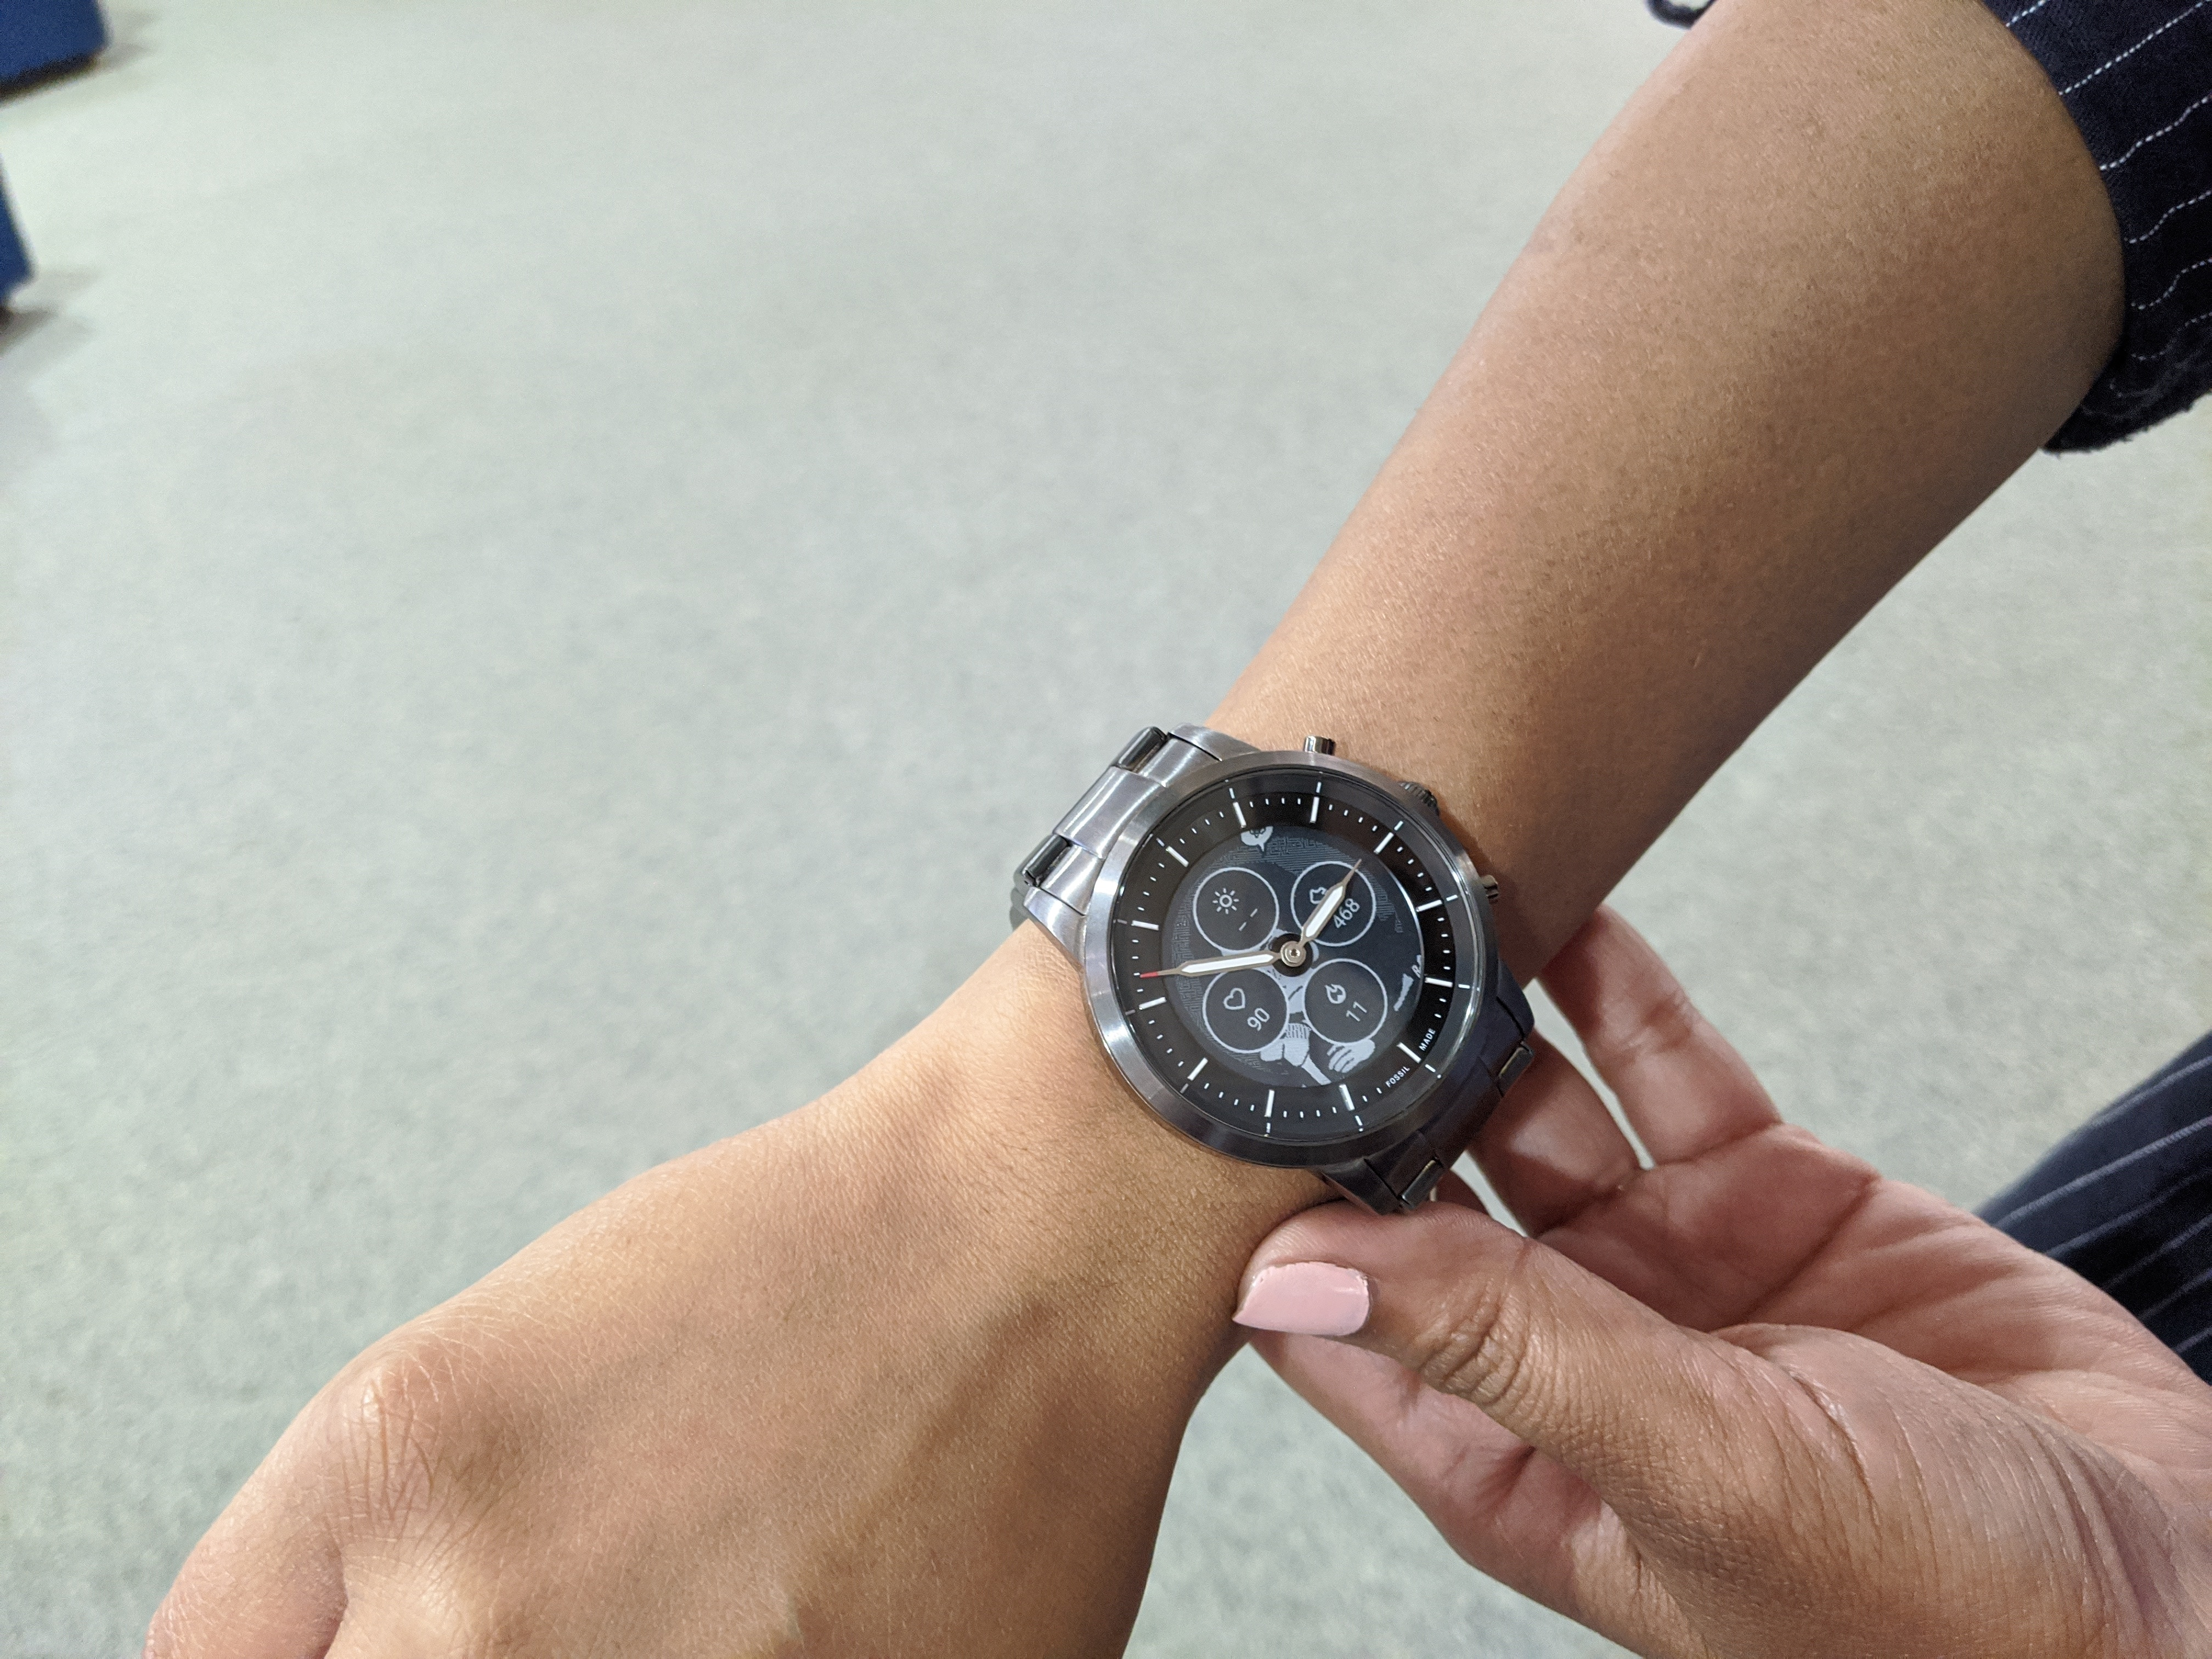 The Fossil Hybrid marries the chunky metal watch design to some smartwatch functionalities in the right way. It doesn't look anything like any other smartwatch in the market right now, which in my opinion is awesome.